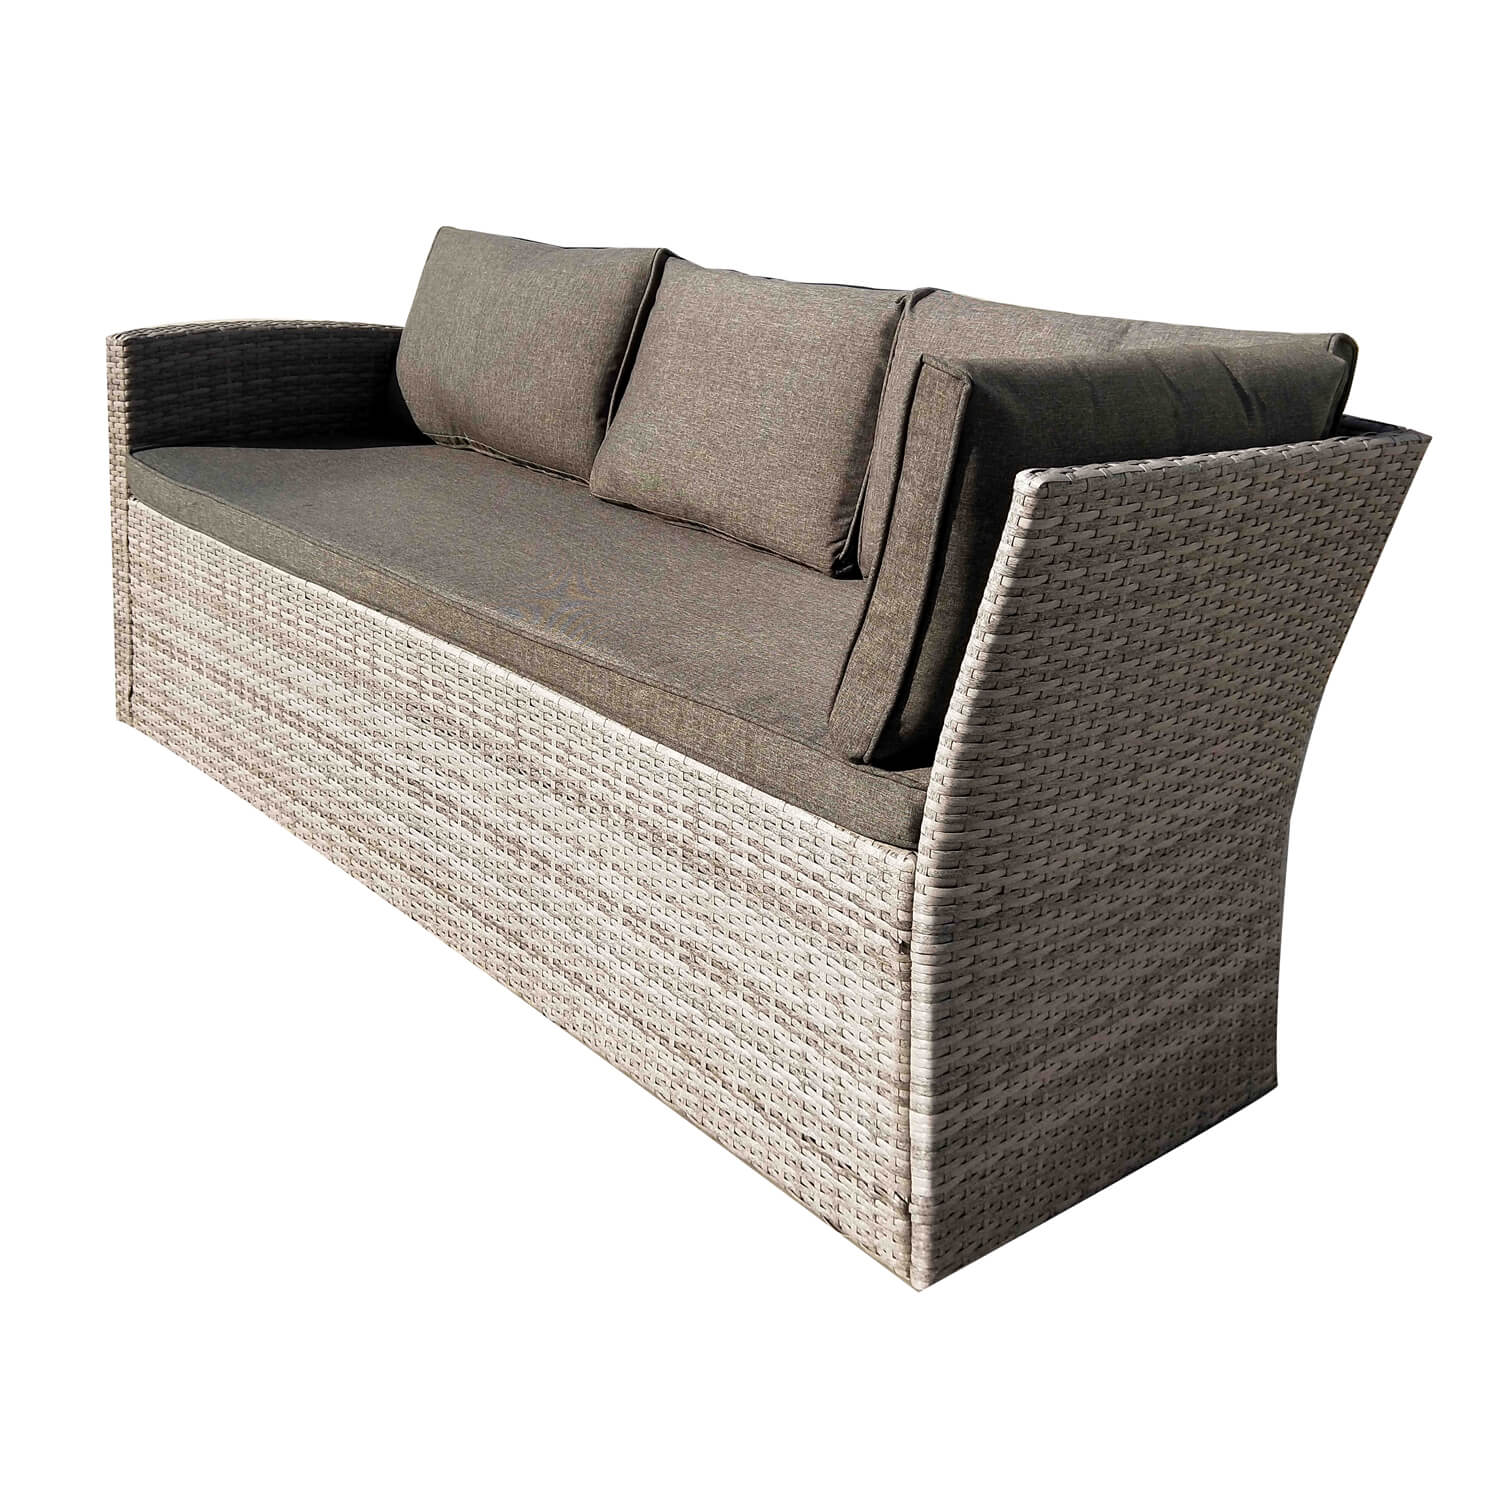 Rattan Corner Sofa Garden Set: Rattan Garden Corner Sofa And Dining Set